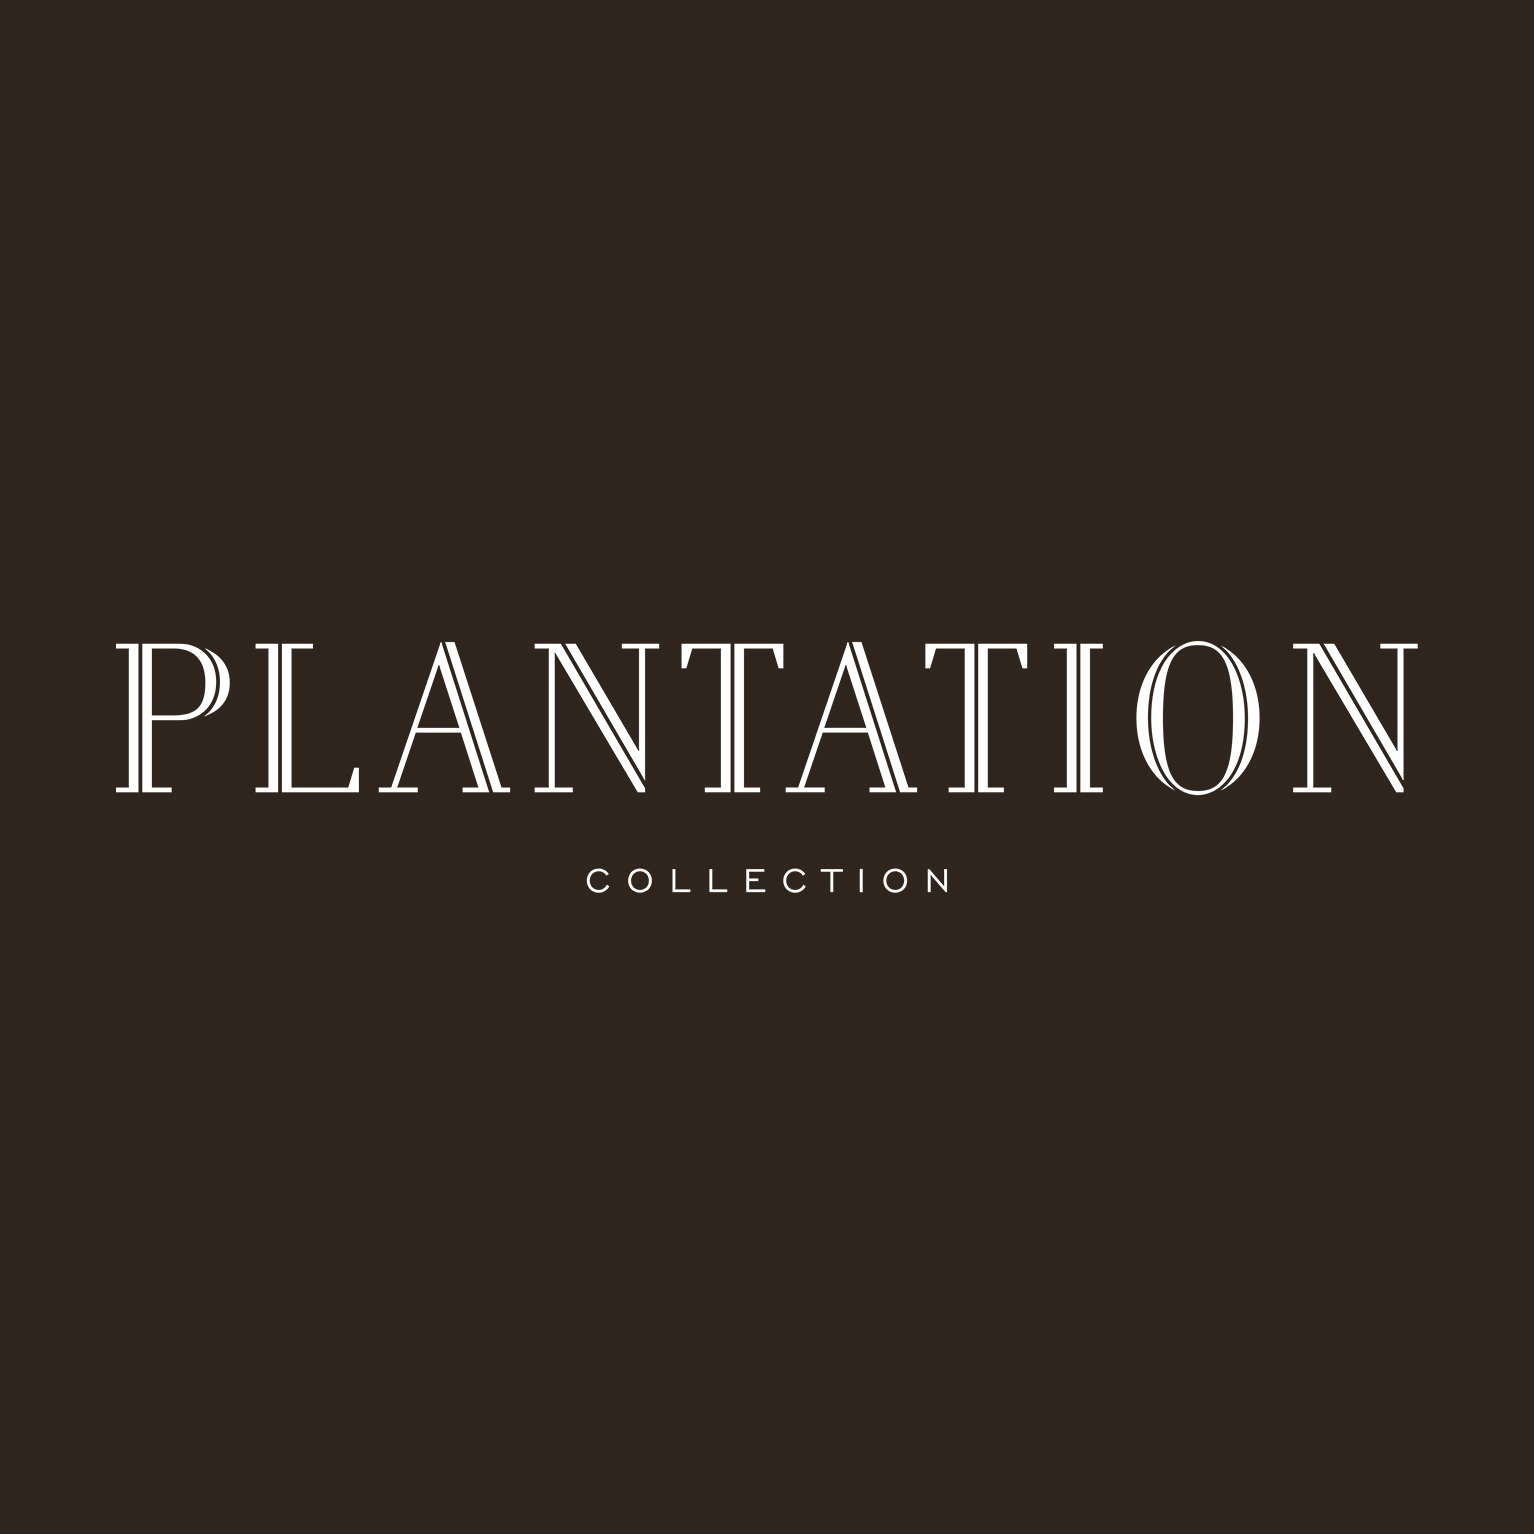 plantation-collection